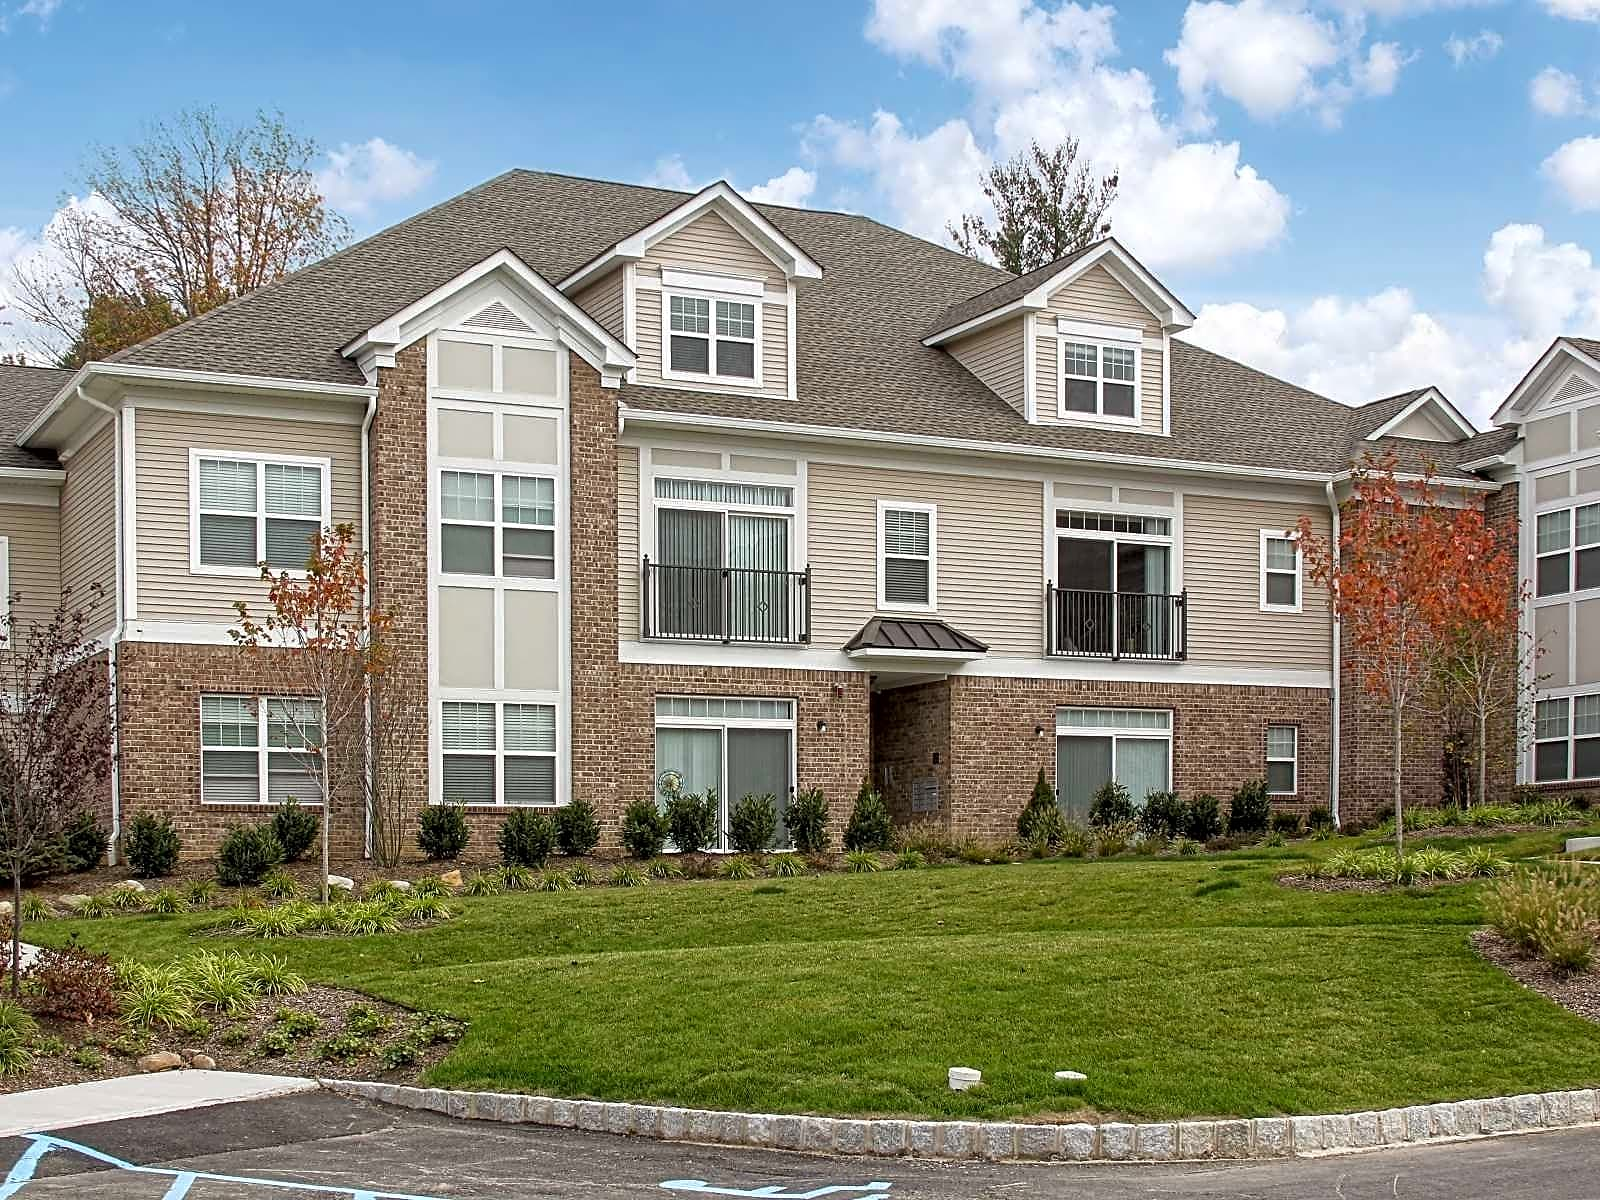 Apartments Near Centenary Pondview Estates for Centenary College Students in Hackettstown, NJ